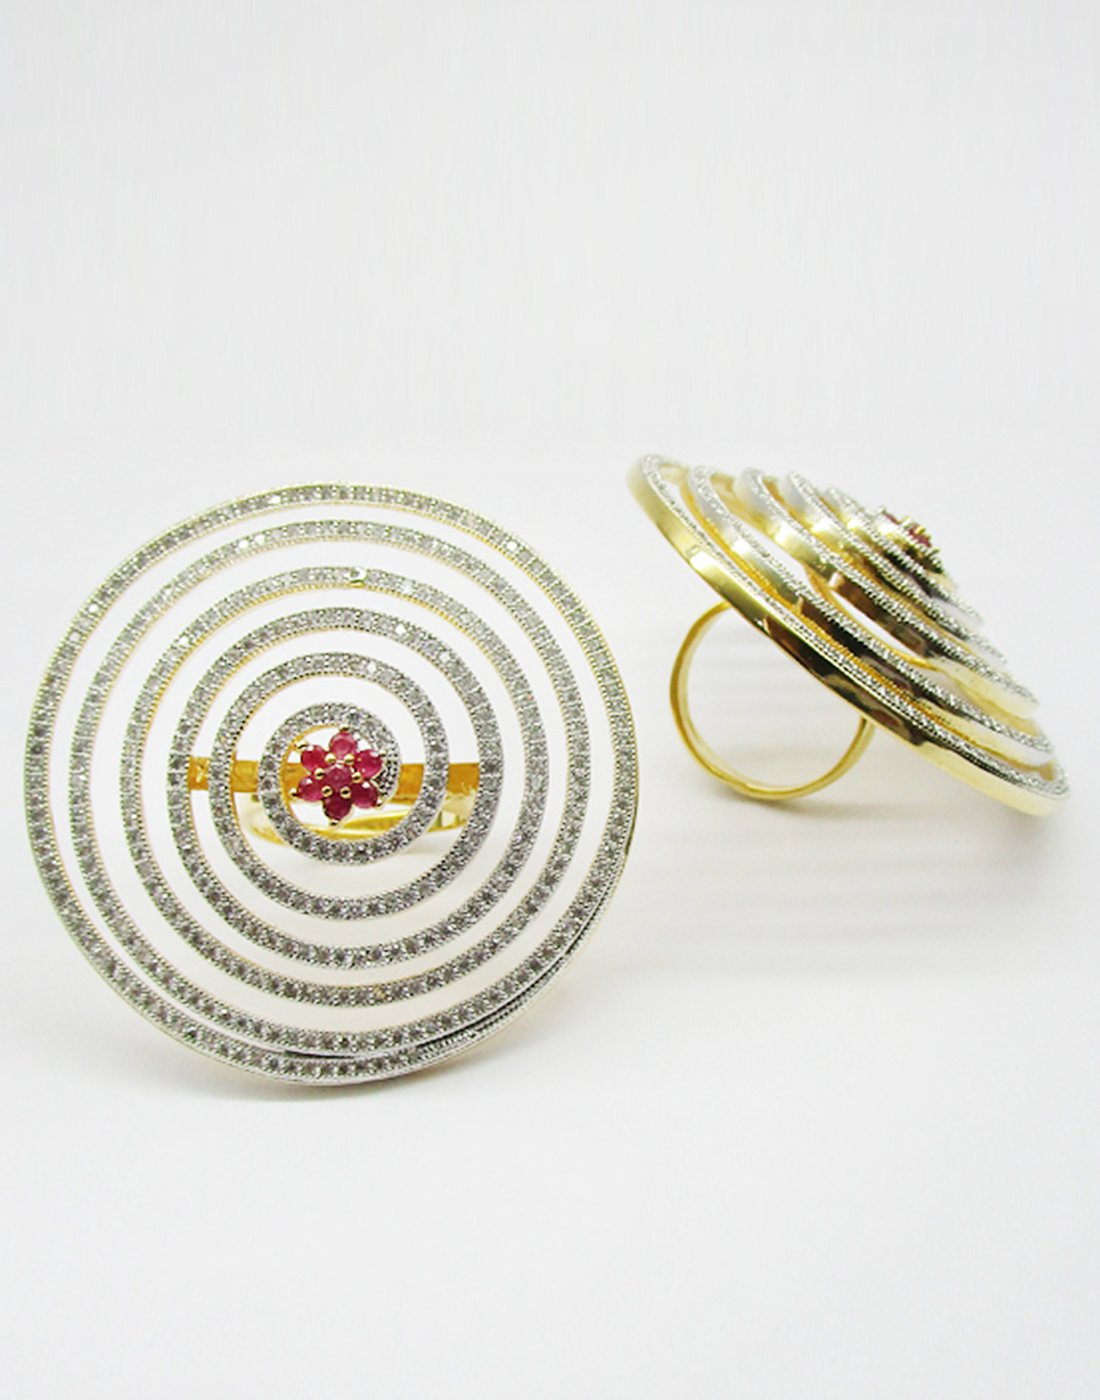 MBZ Meena Bazaar-Beautiful Gold Plated Ring